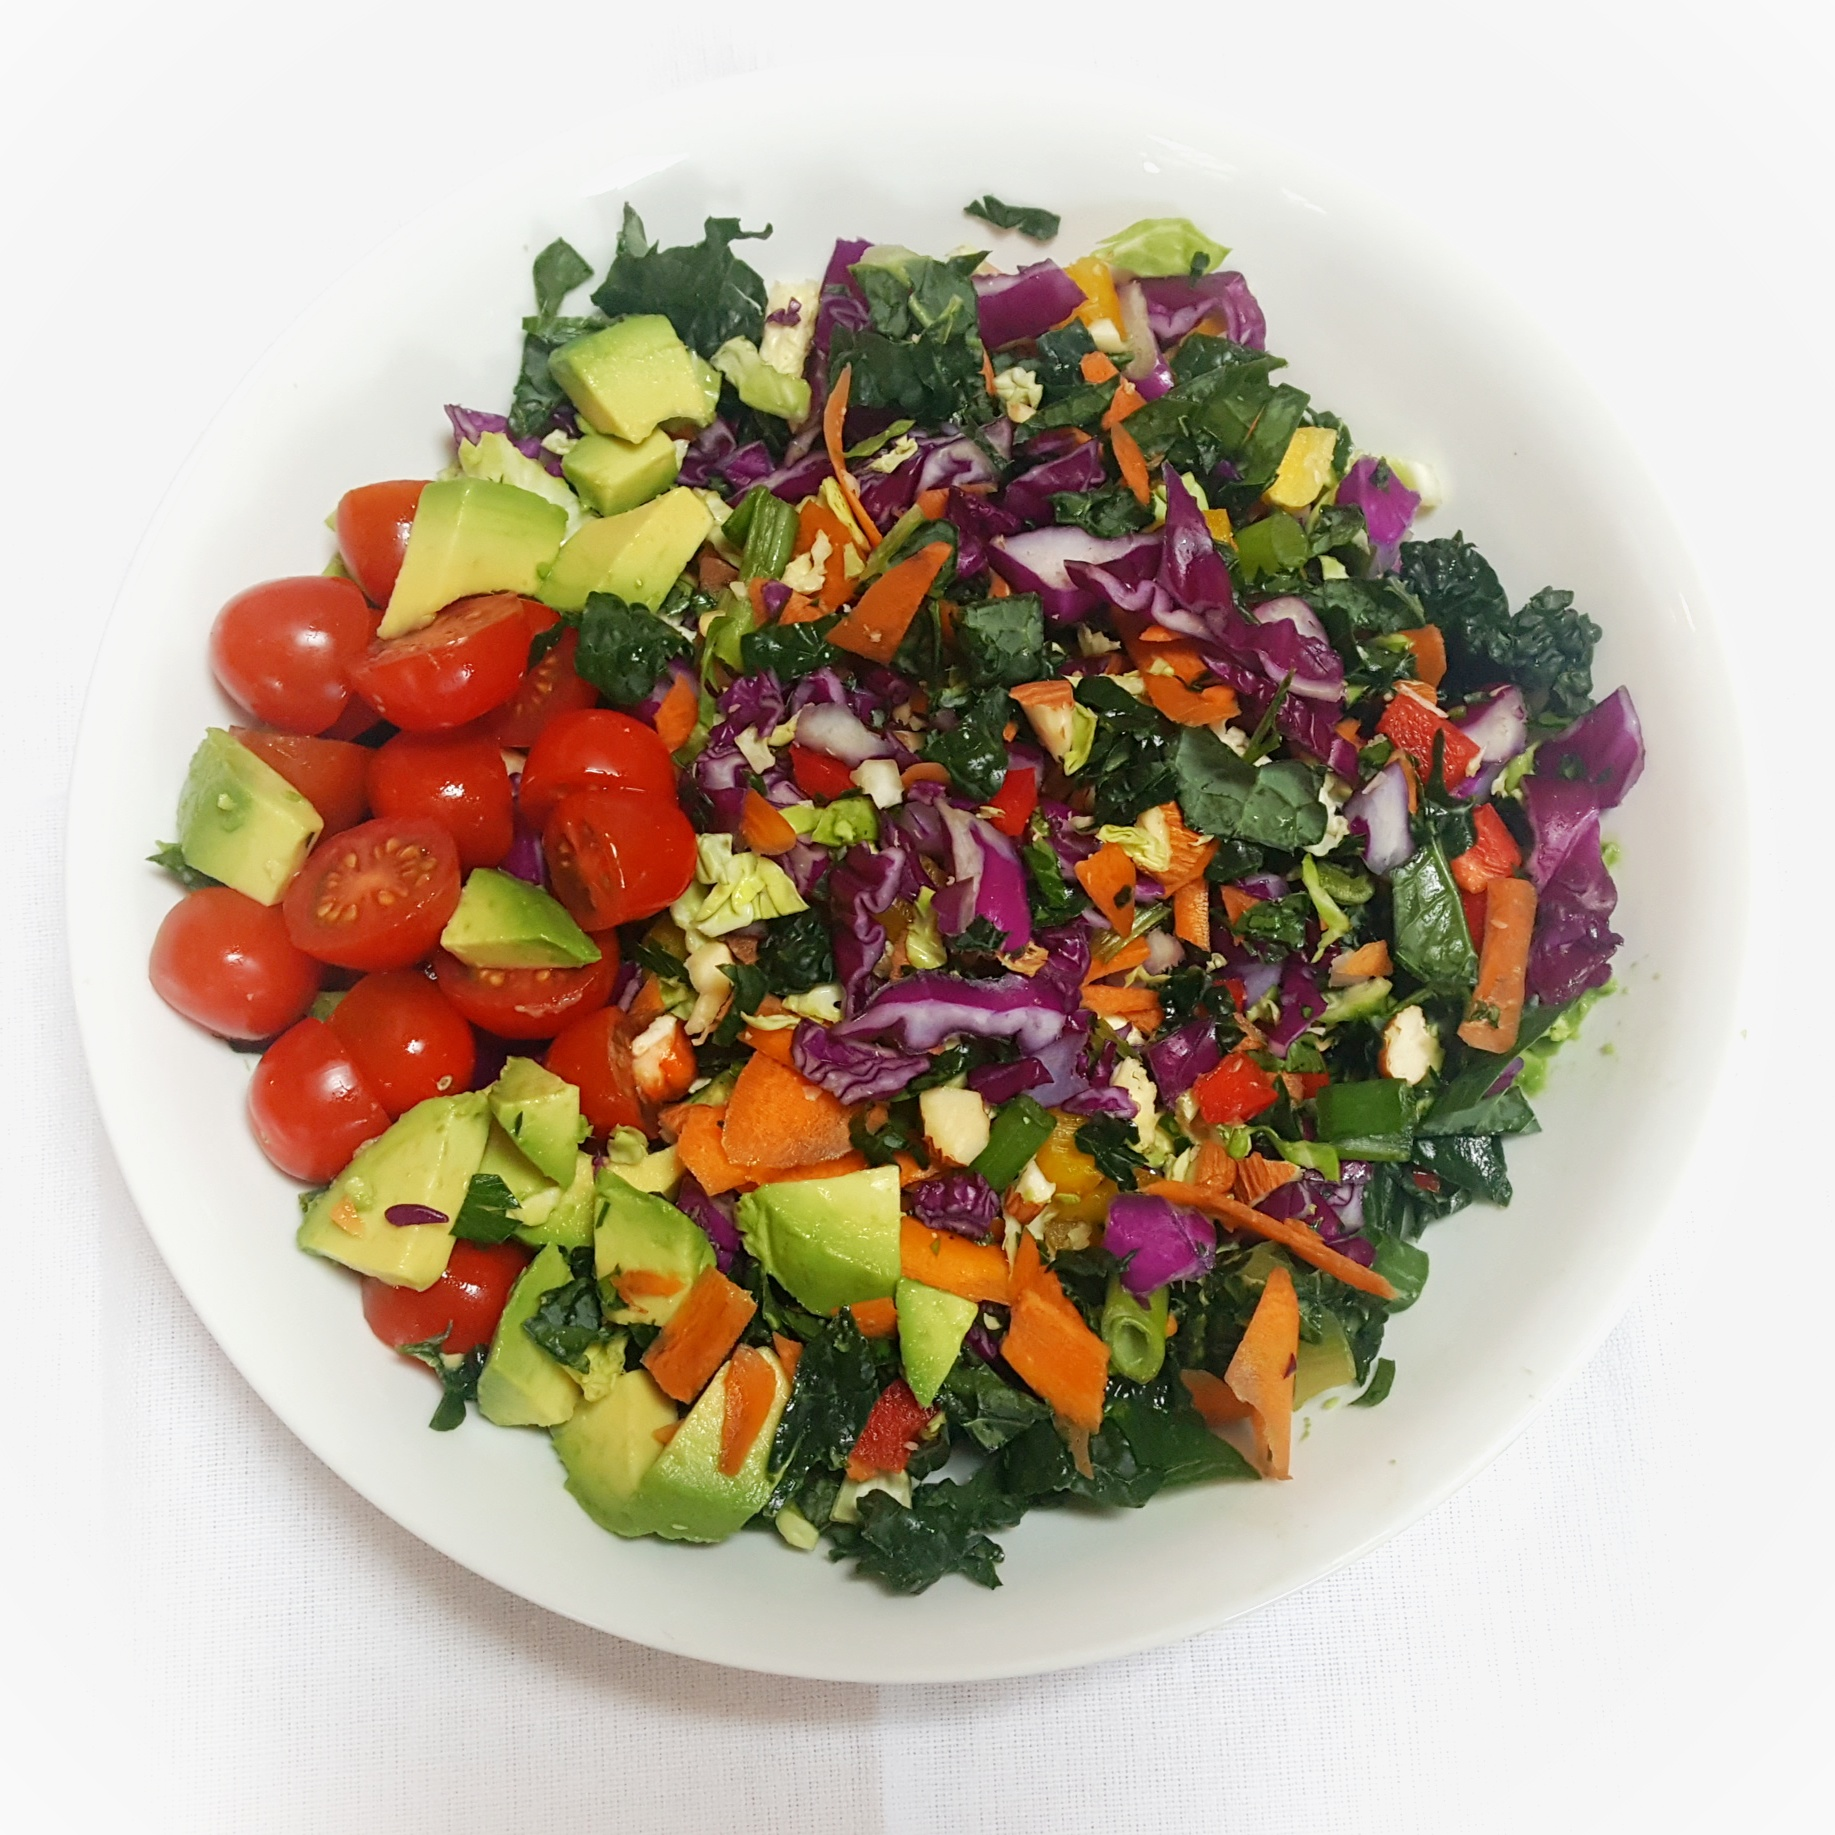 Hearty Detox Salad